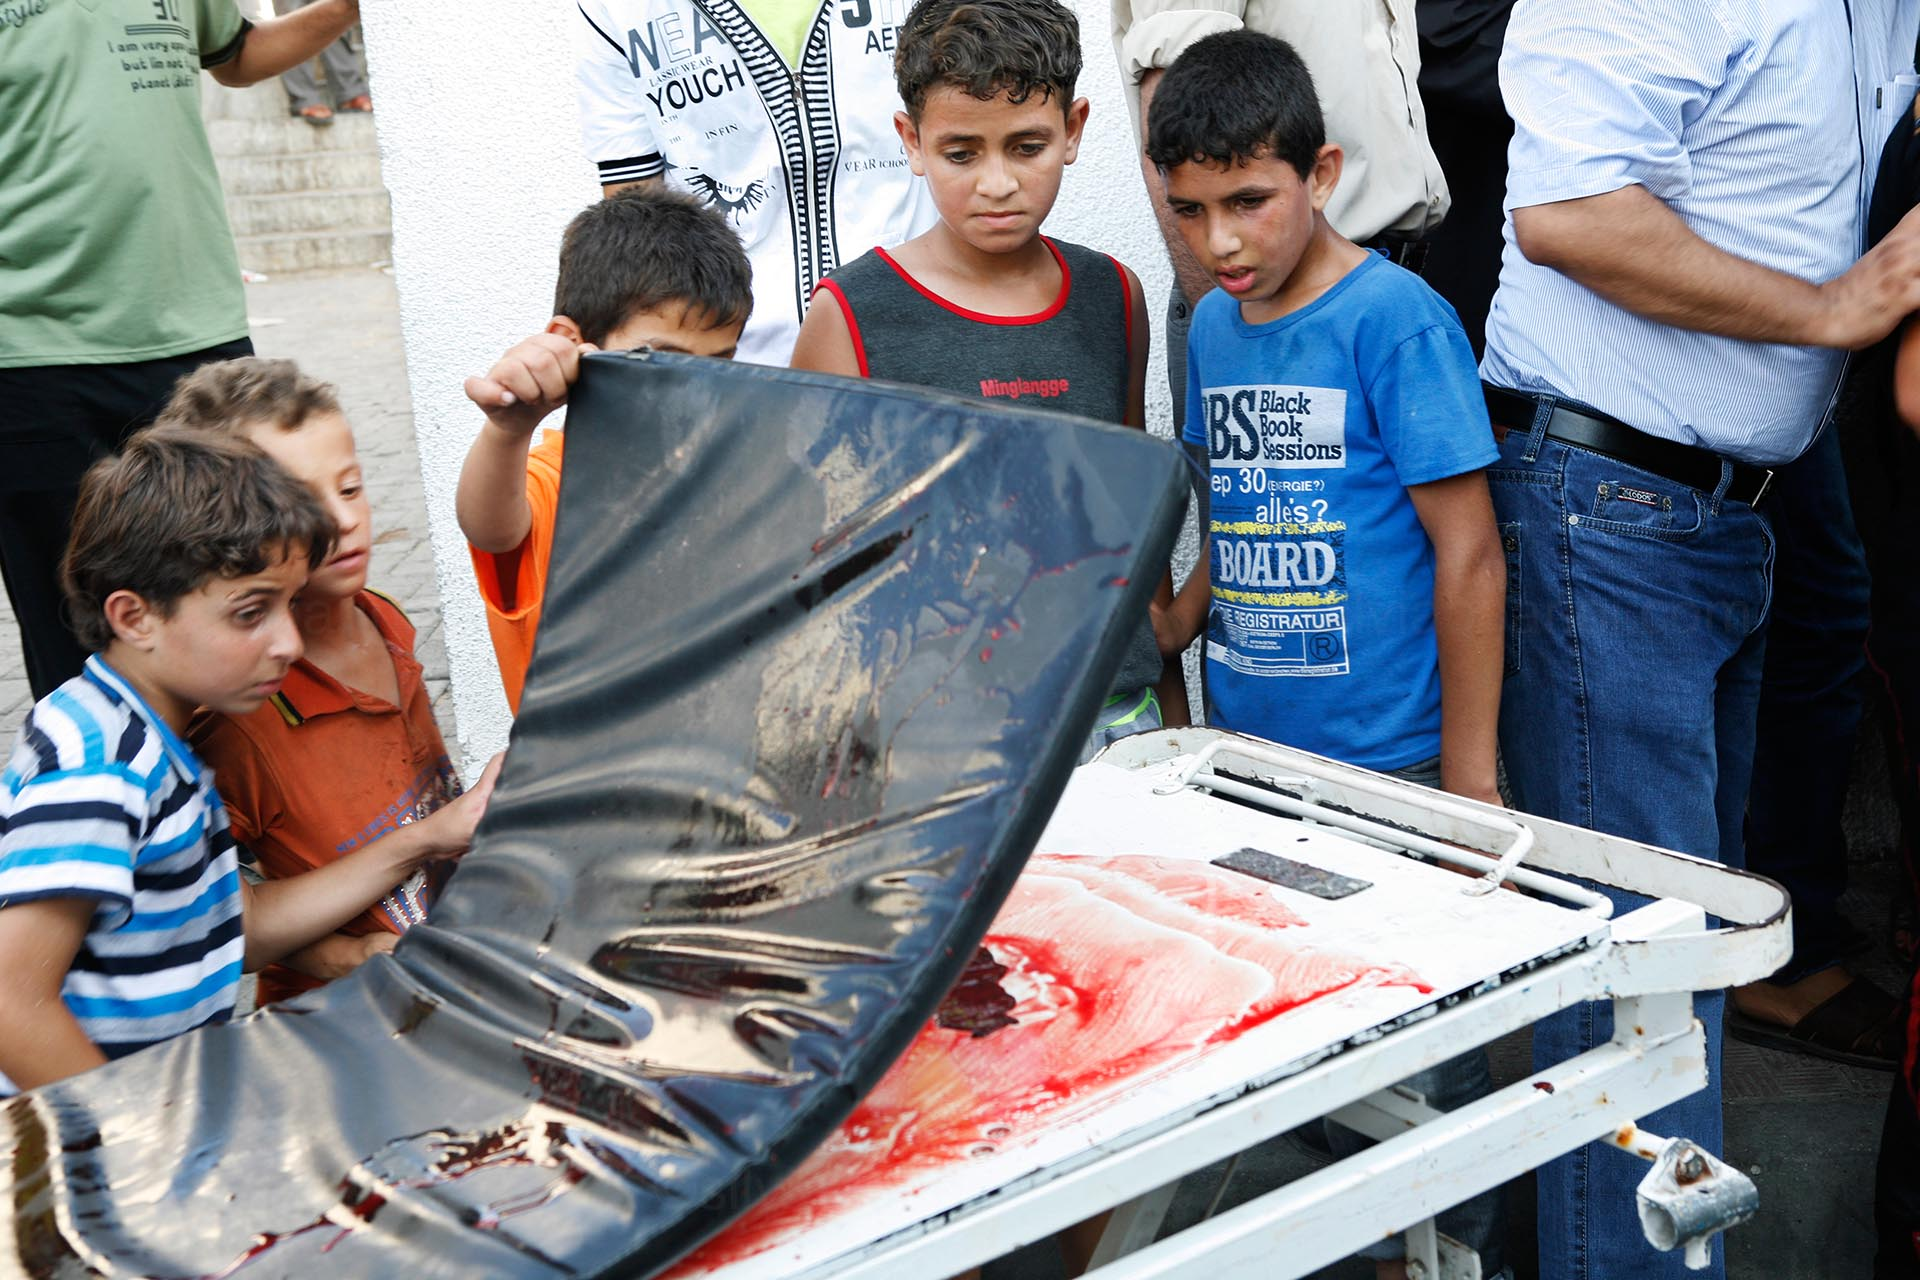 With a mix of curiosity, fear and disgust, children hanging outside the Shifa hospital survey the blood on a trolley that brought in a body. Gaza, July 2014